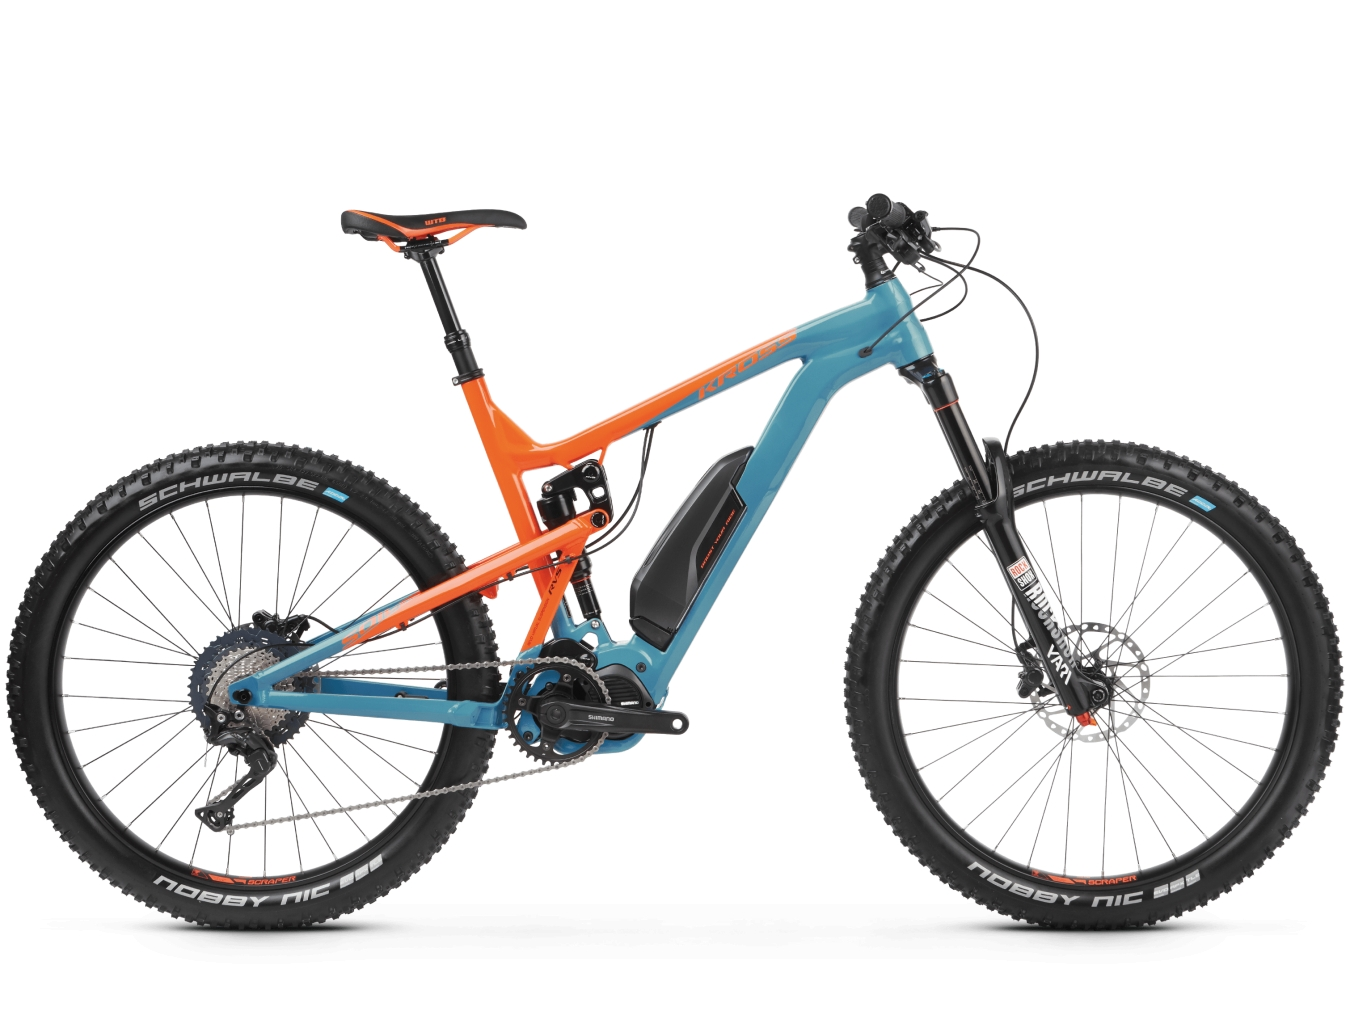 //kross.pl/sites/default/files/styles/bike_big/public/bikes/2019/ebike_enduro/soil_boost_2_0_blue_orange_glossy.png